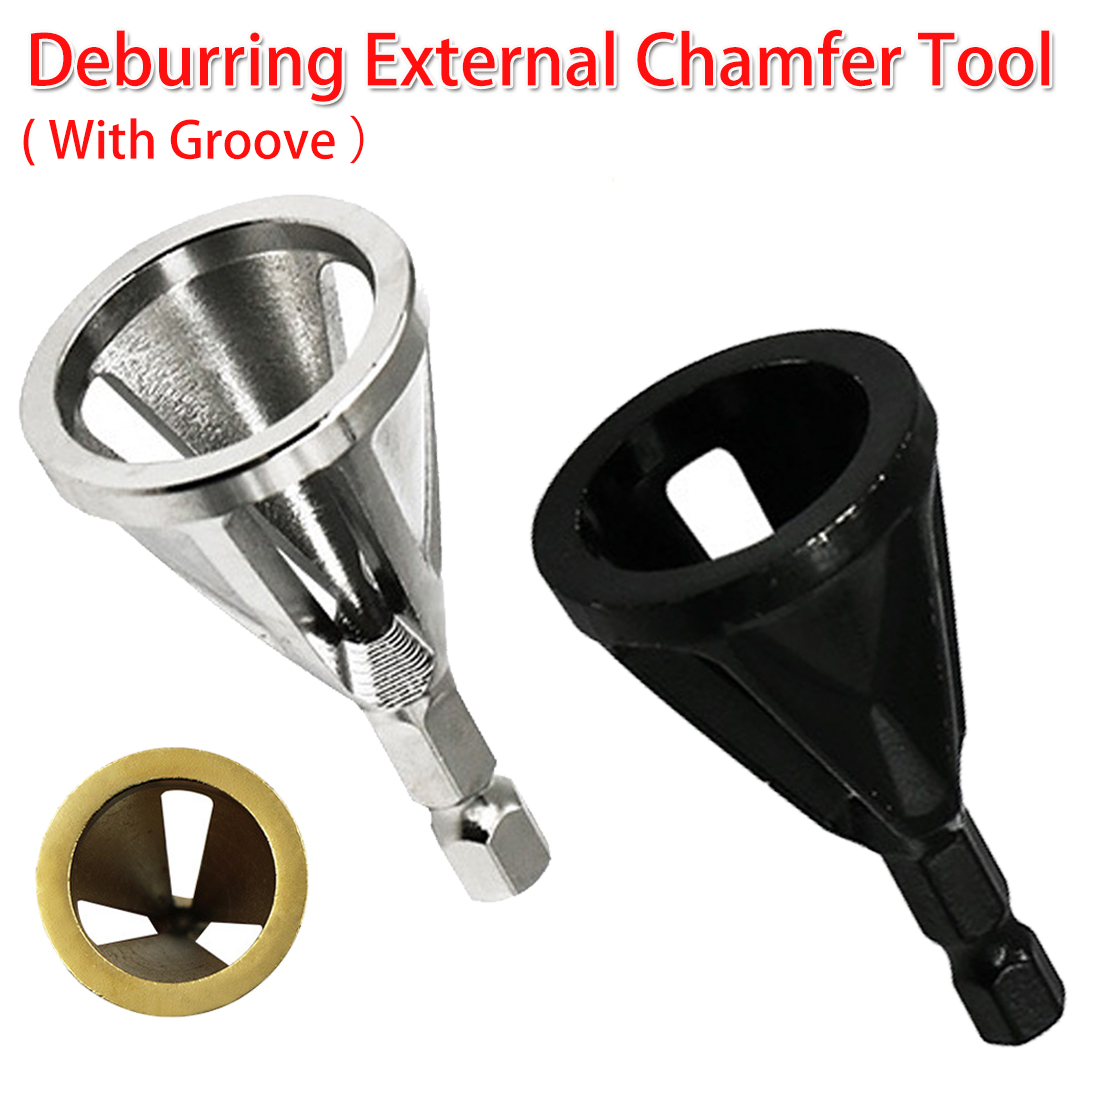 Stainless Steel Deburring External Chamfer Tool High Strength Hardness Drill Bit Remove Burr 1/4 Shank For Copper/ Wood/ Plastic